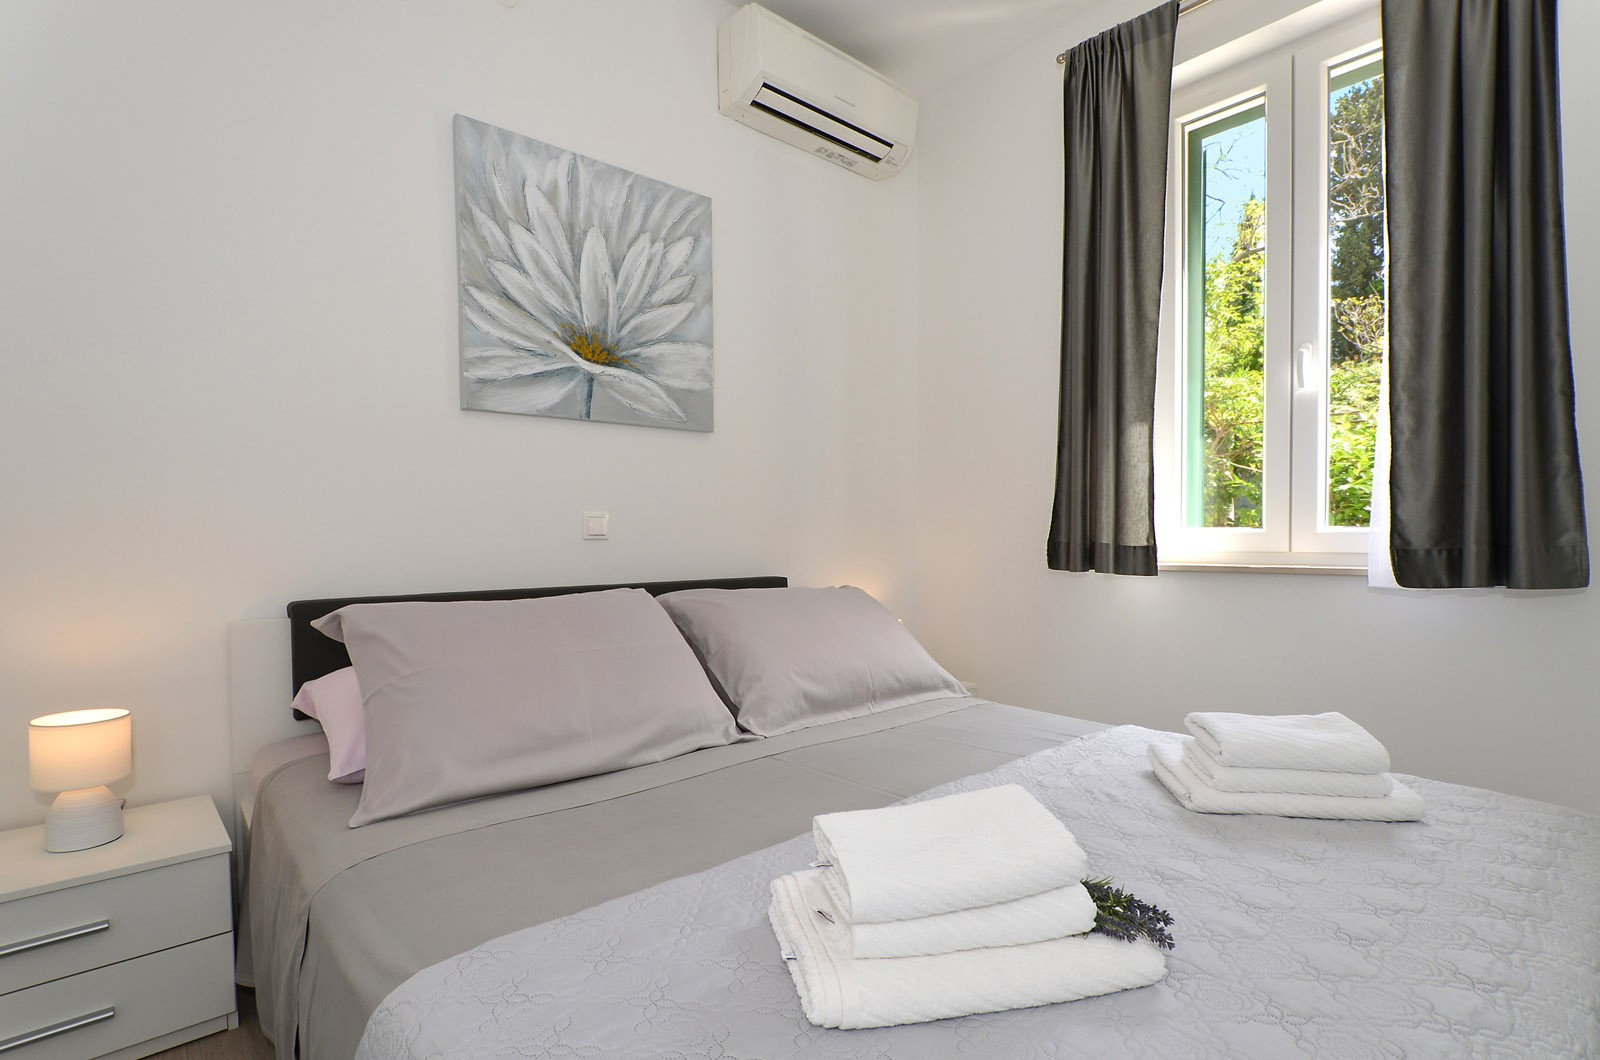 Luxury Apartment near Split, Vacation Rental Croatia